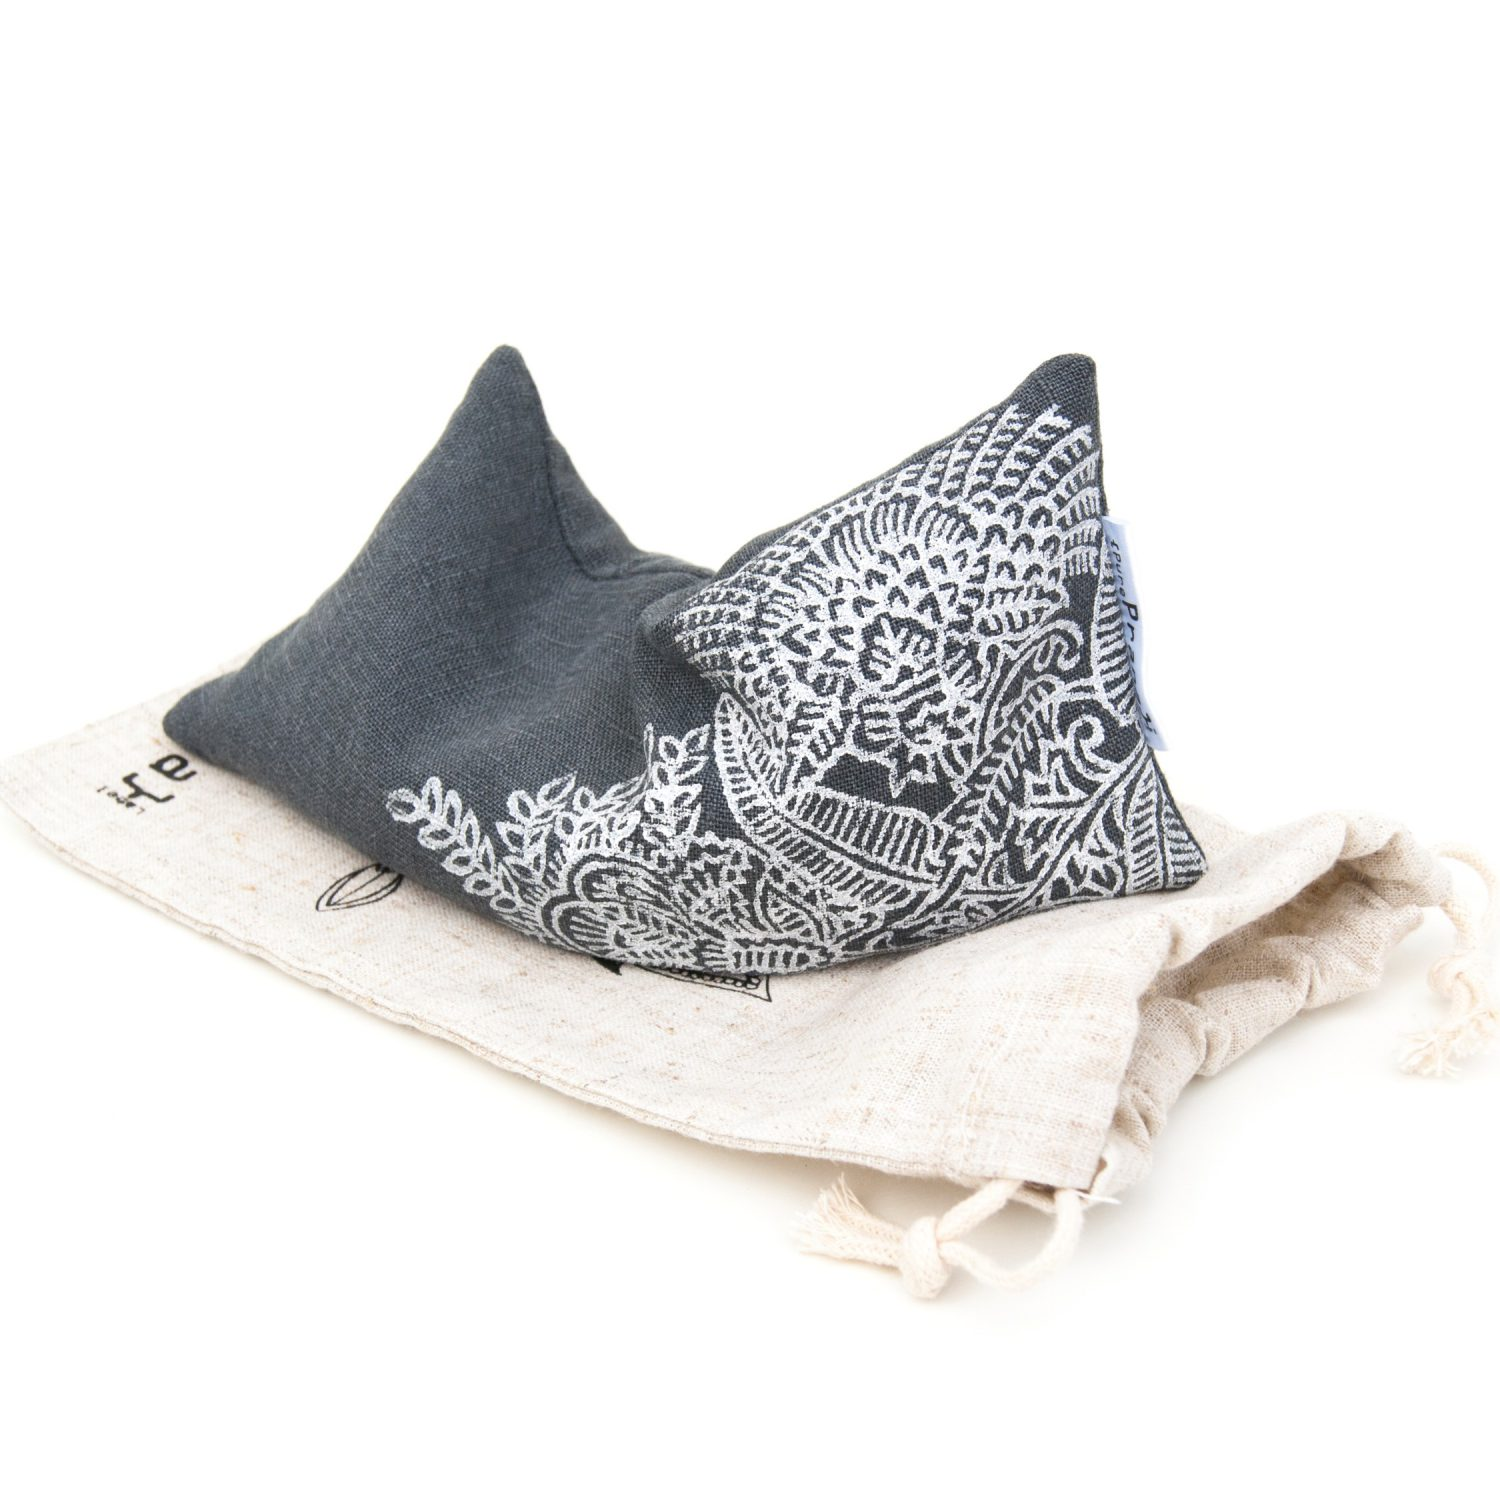 Our eye pillows come with a matching pouch